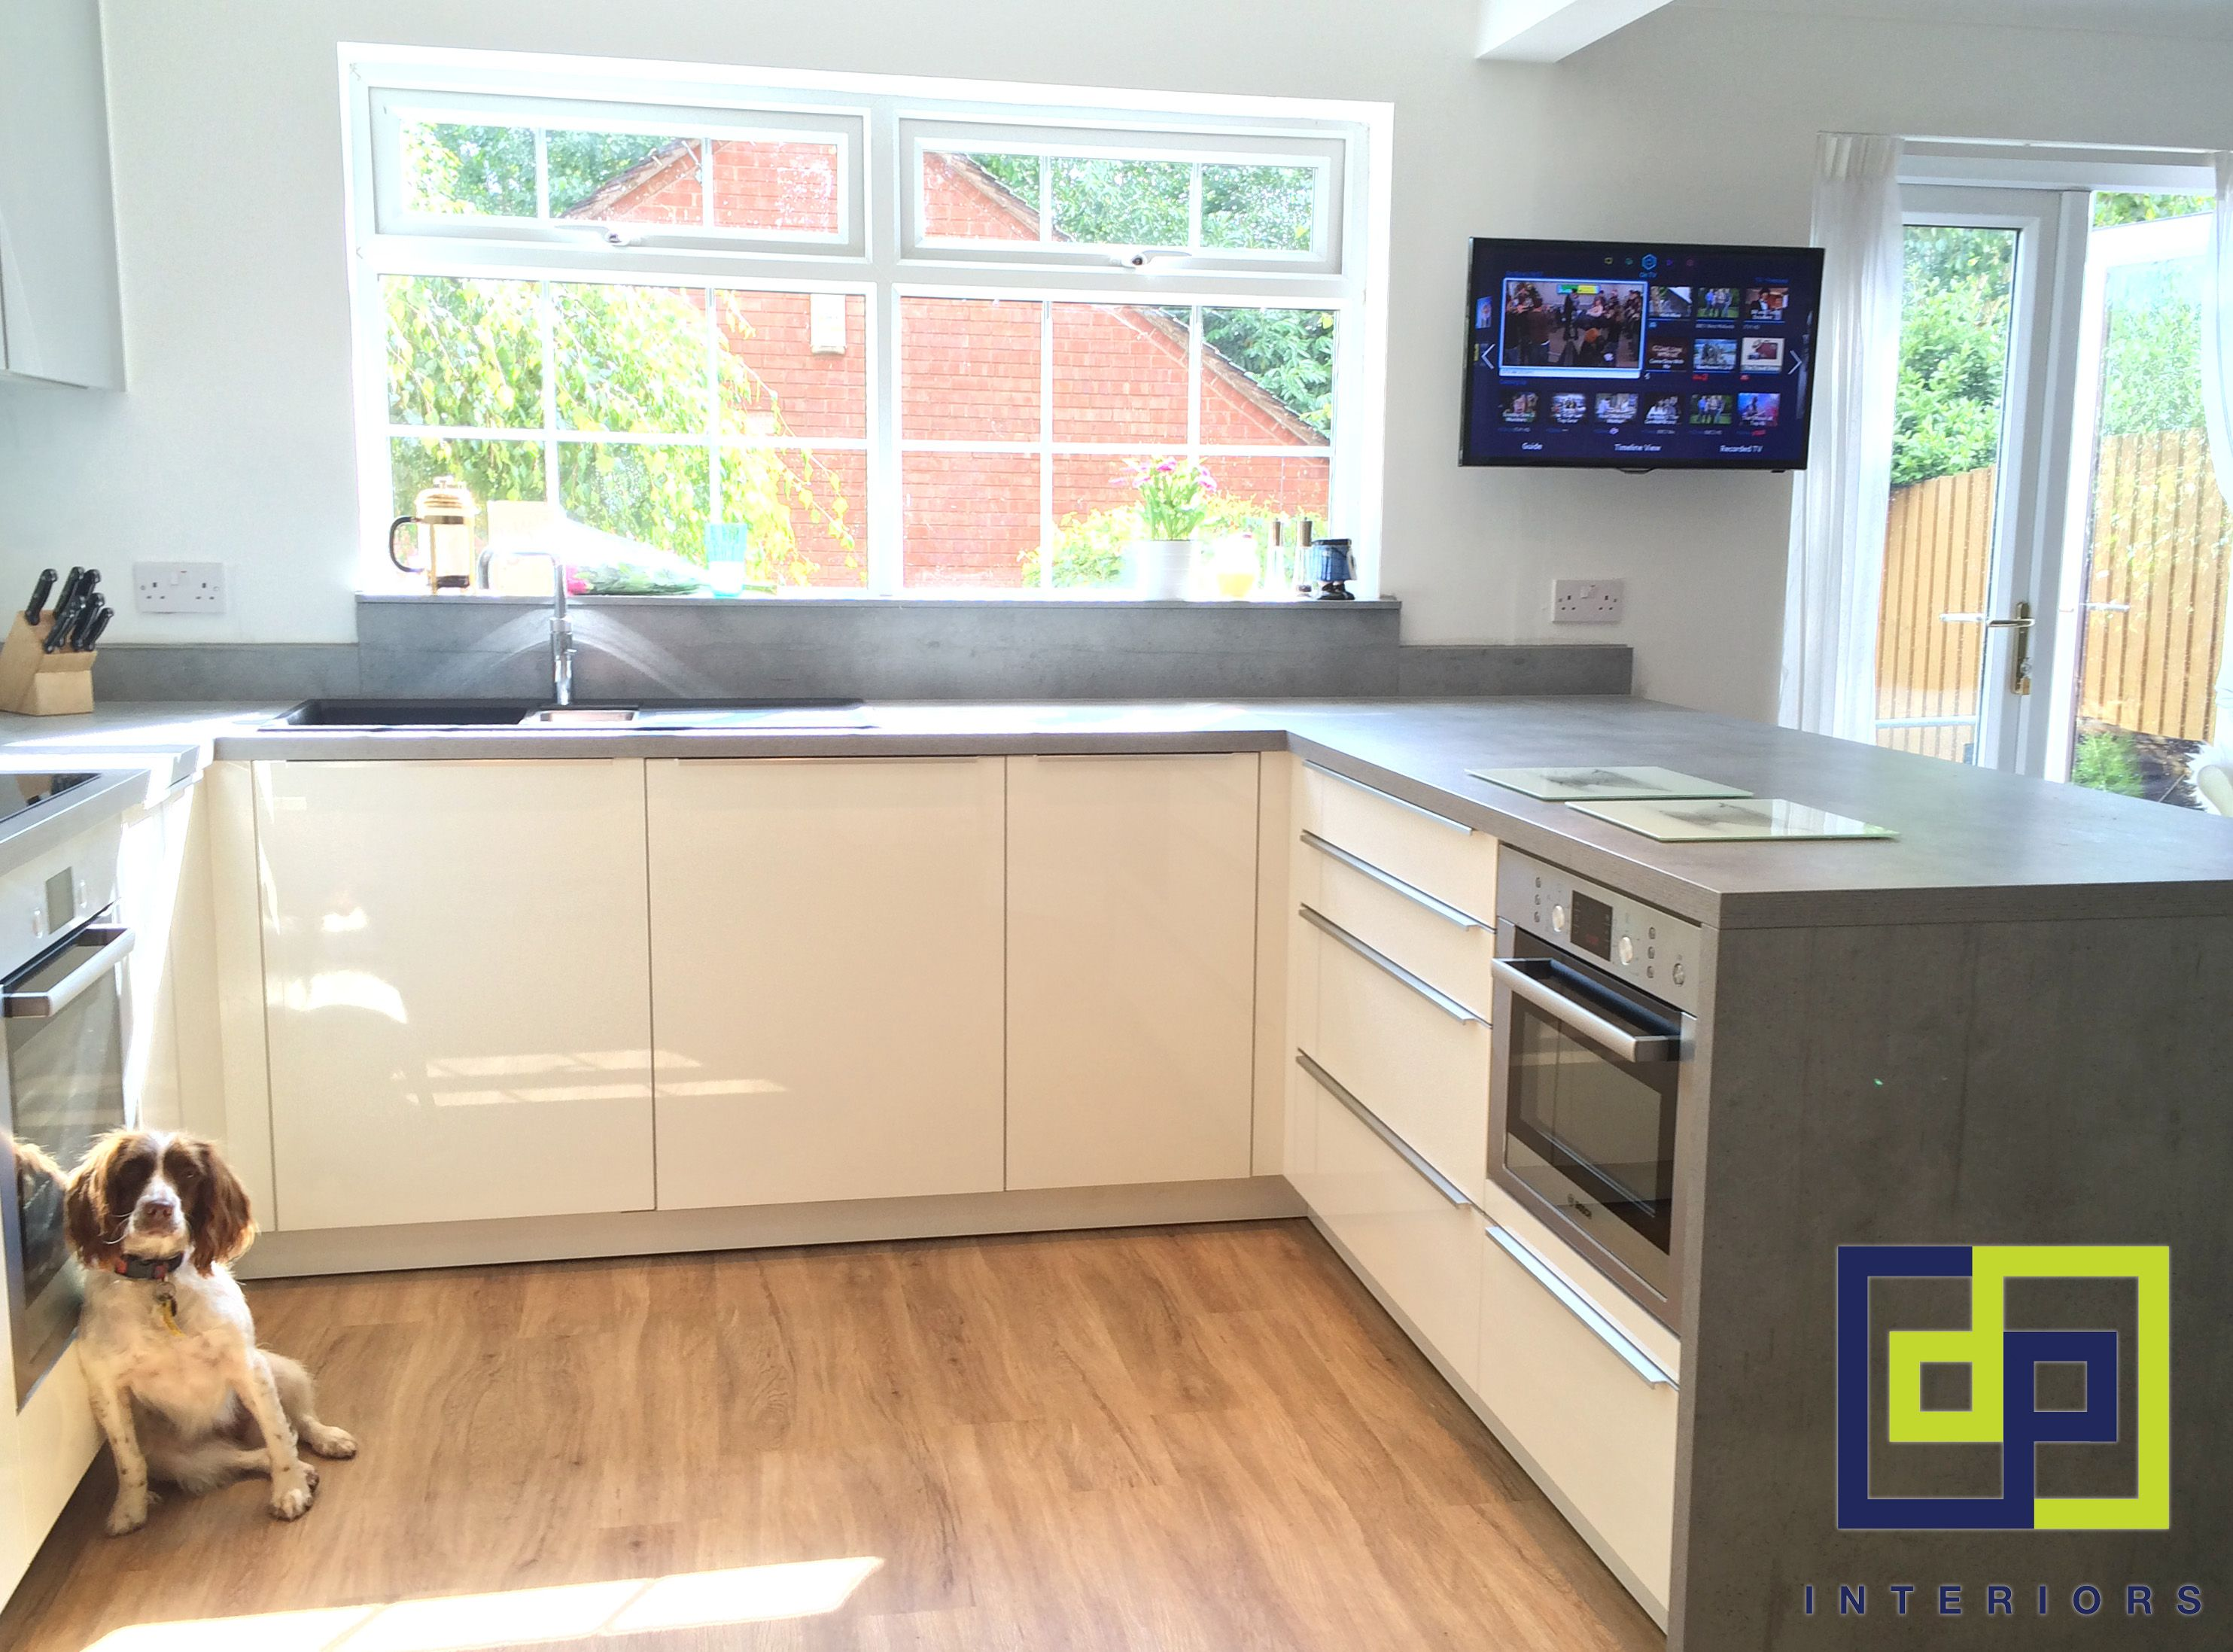 kitchen laminate worktops. cream gloss kitchen with concrete effect laminate worktops  want the dog and